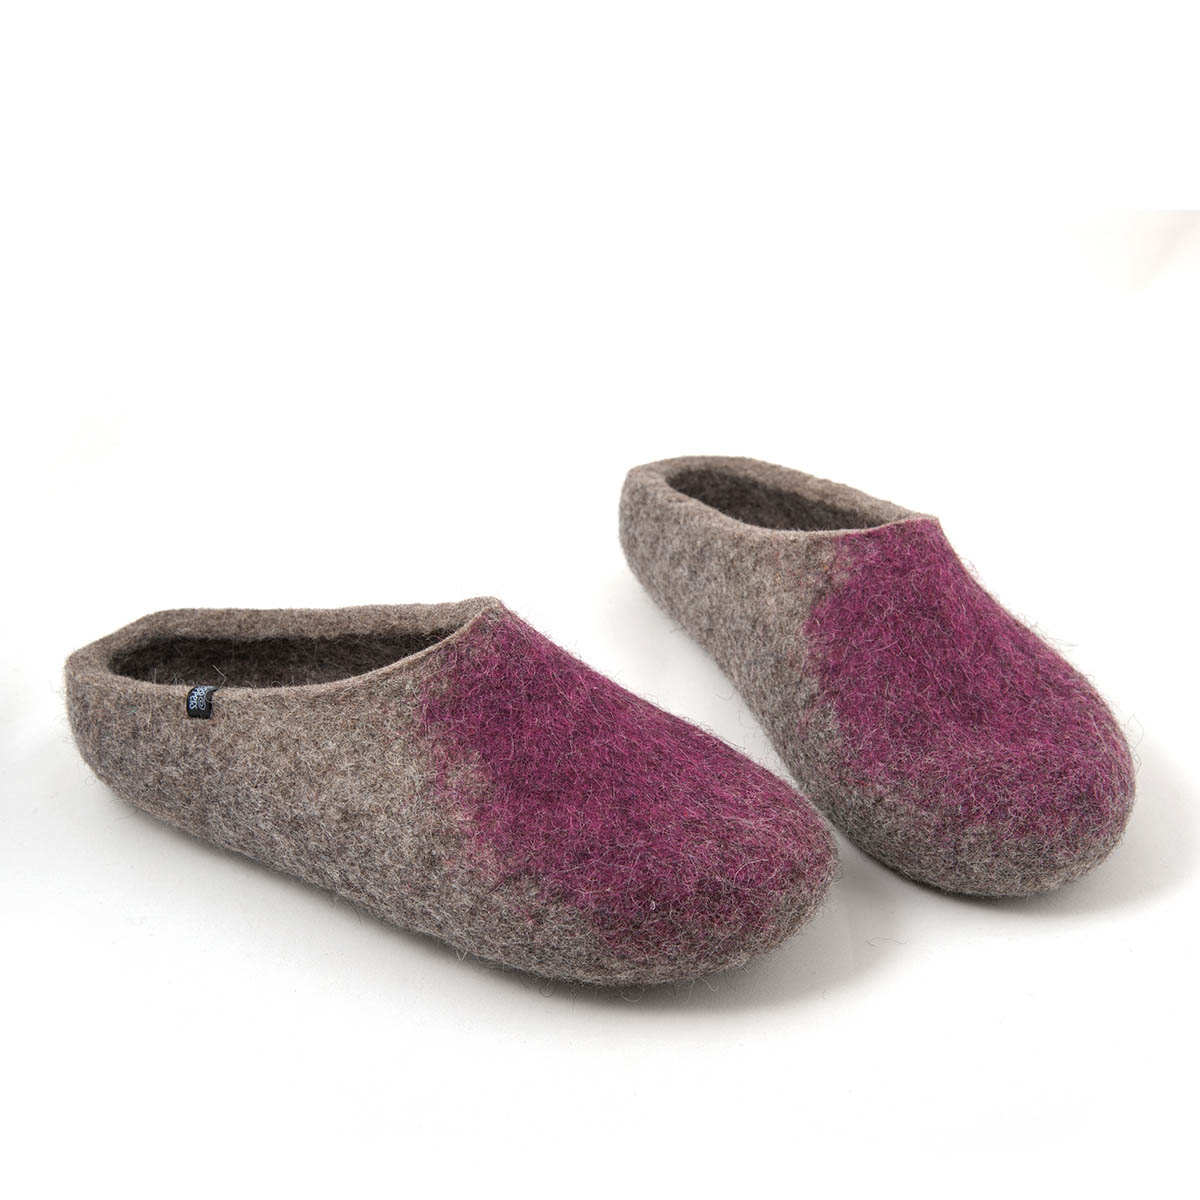 PURPLE MULES VERY SOFT 100/% LEATHER SLIPPERS